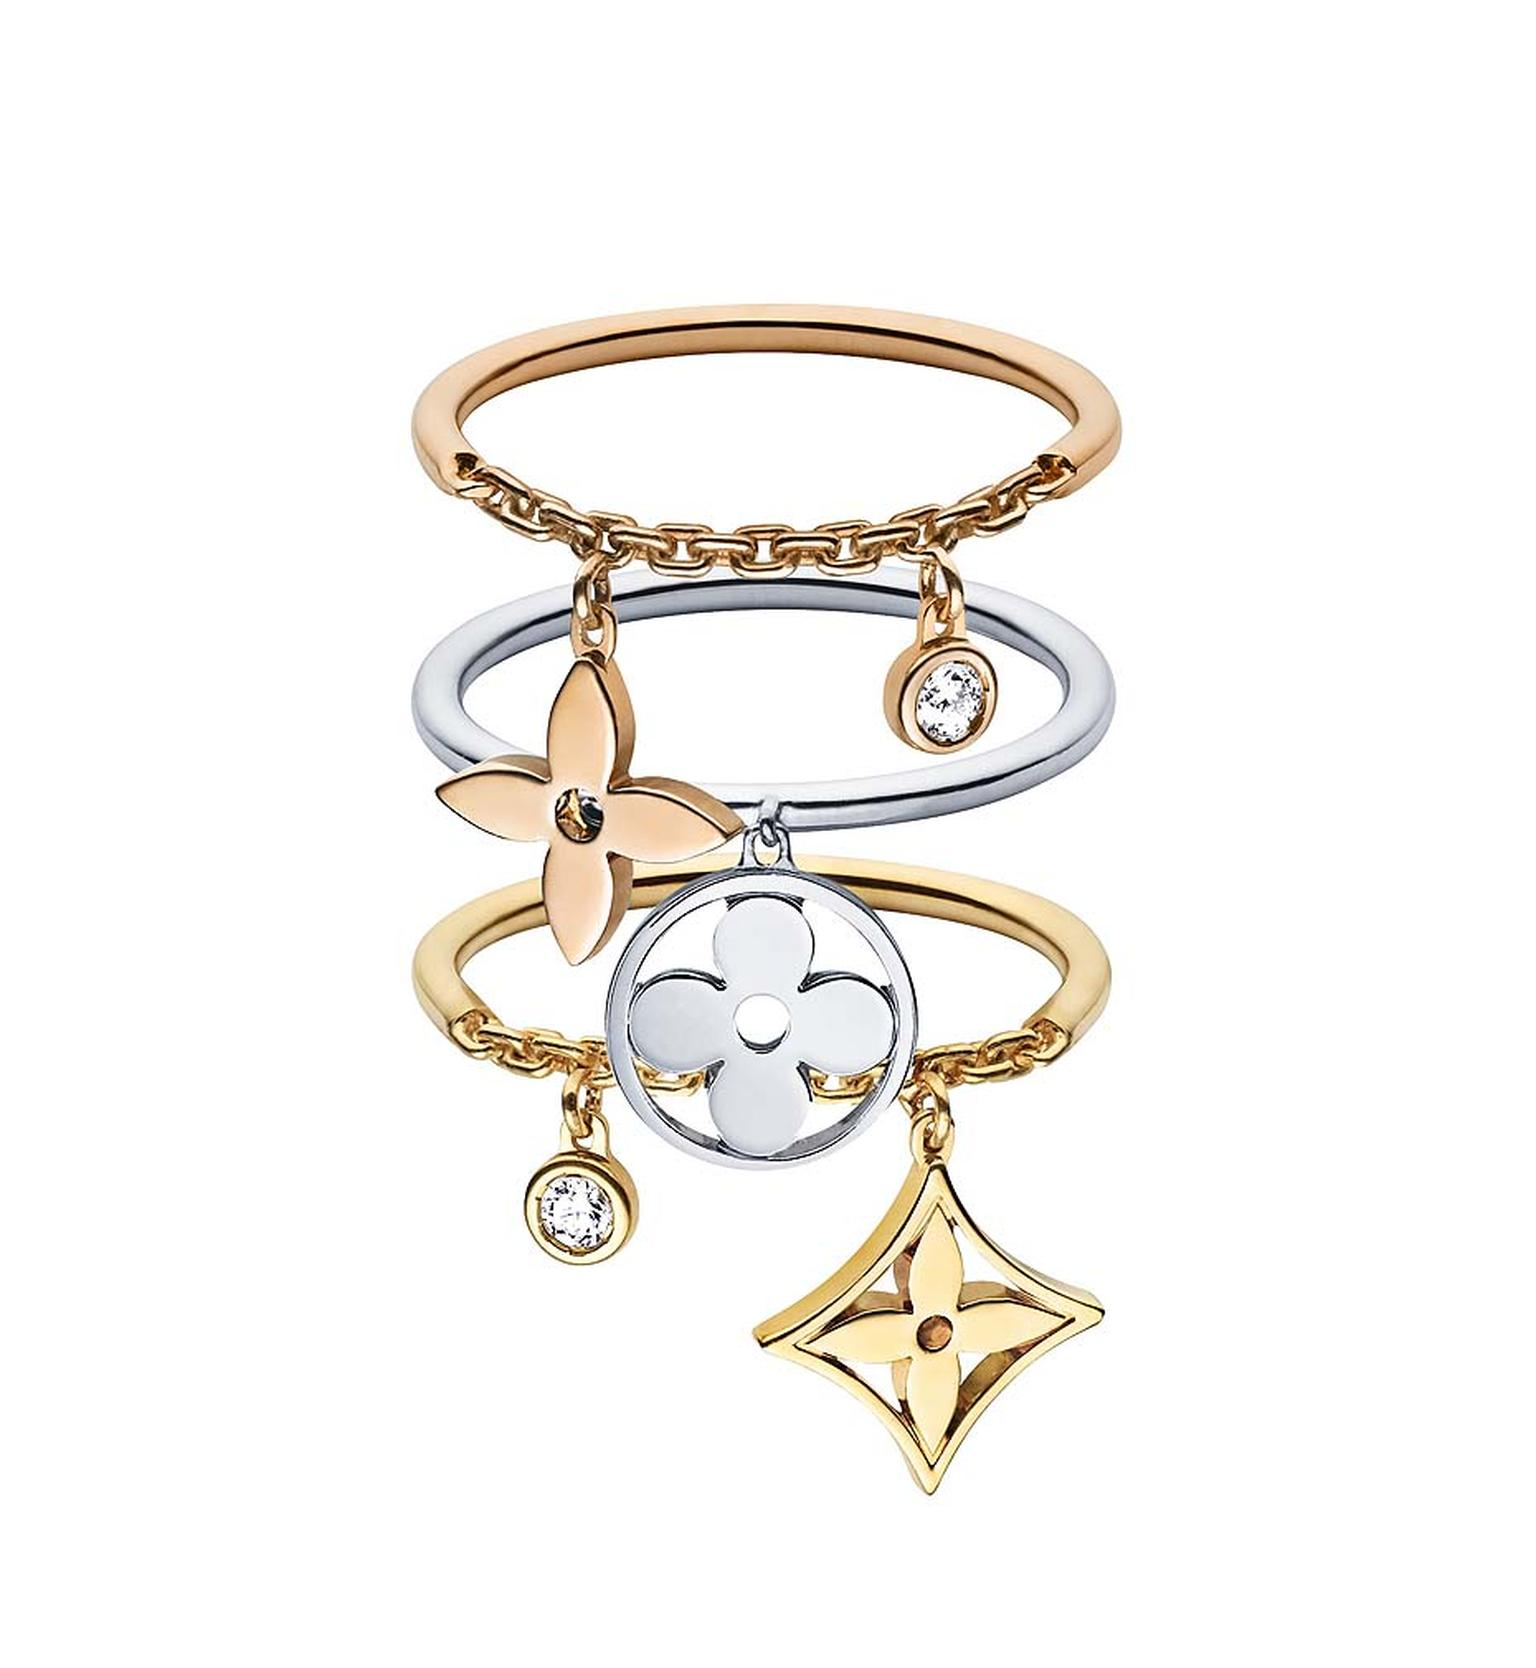 Louis Vuitton's Dangling Variations ring can be worn separately, or stacked together to make more of a statement.